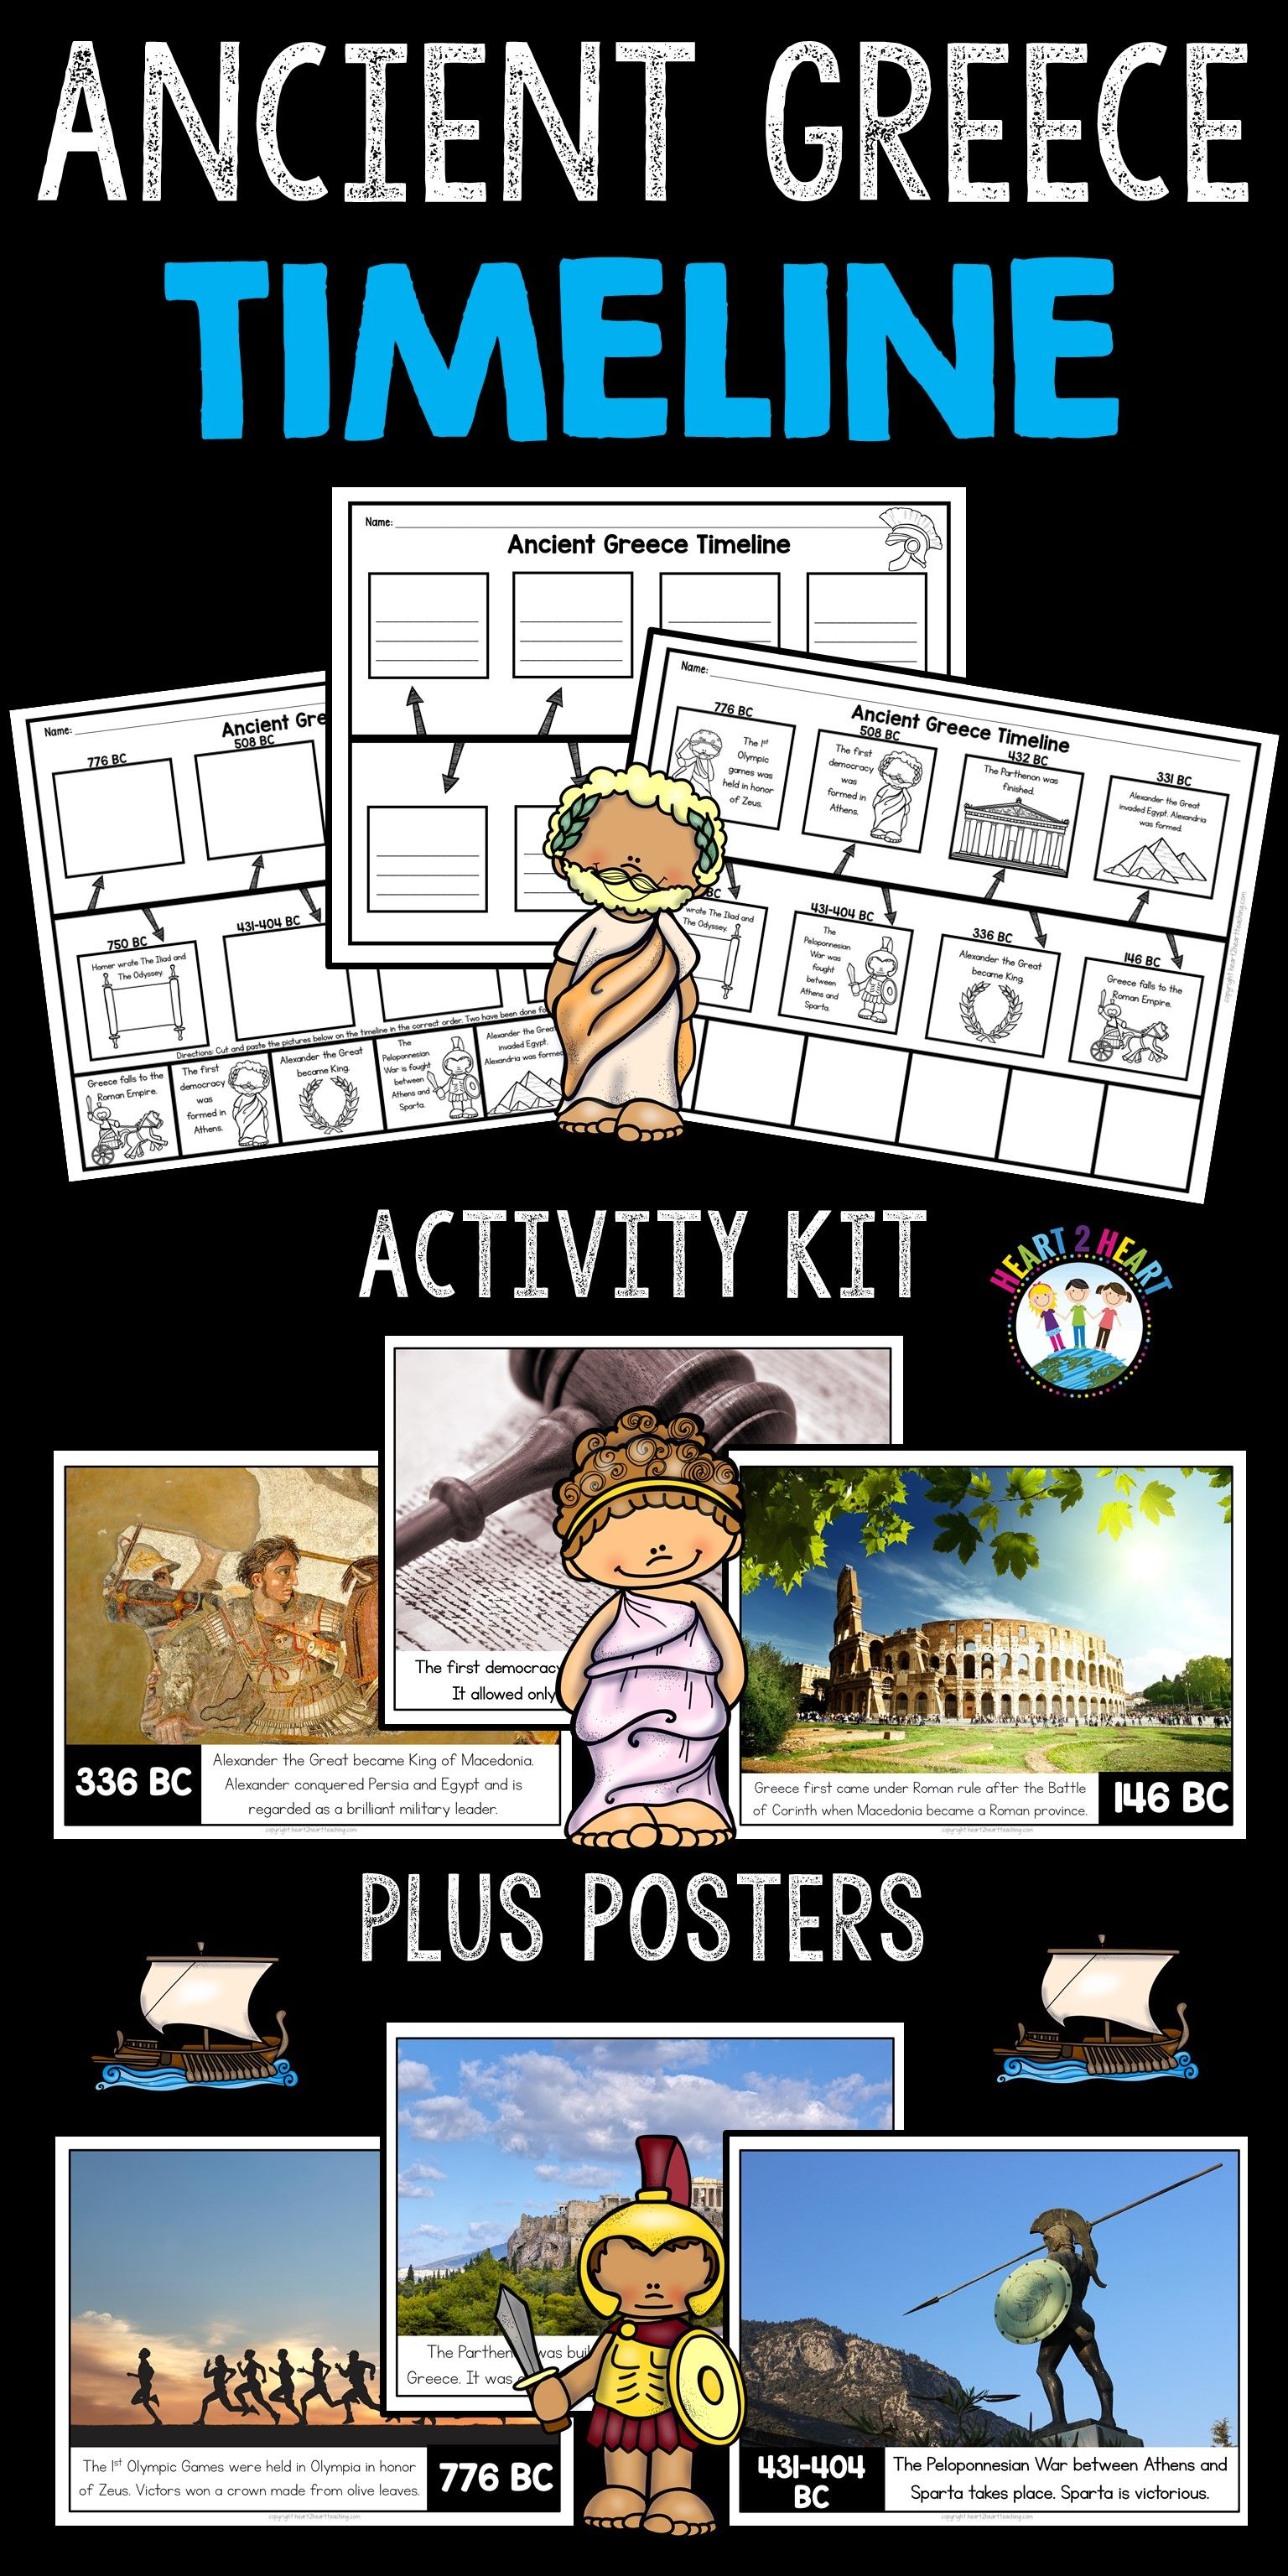 Ancient Greece Timeline And Bulletin Board Kit